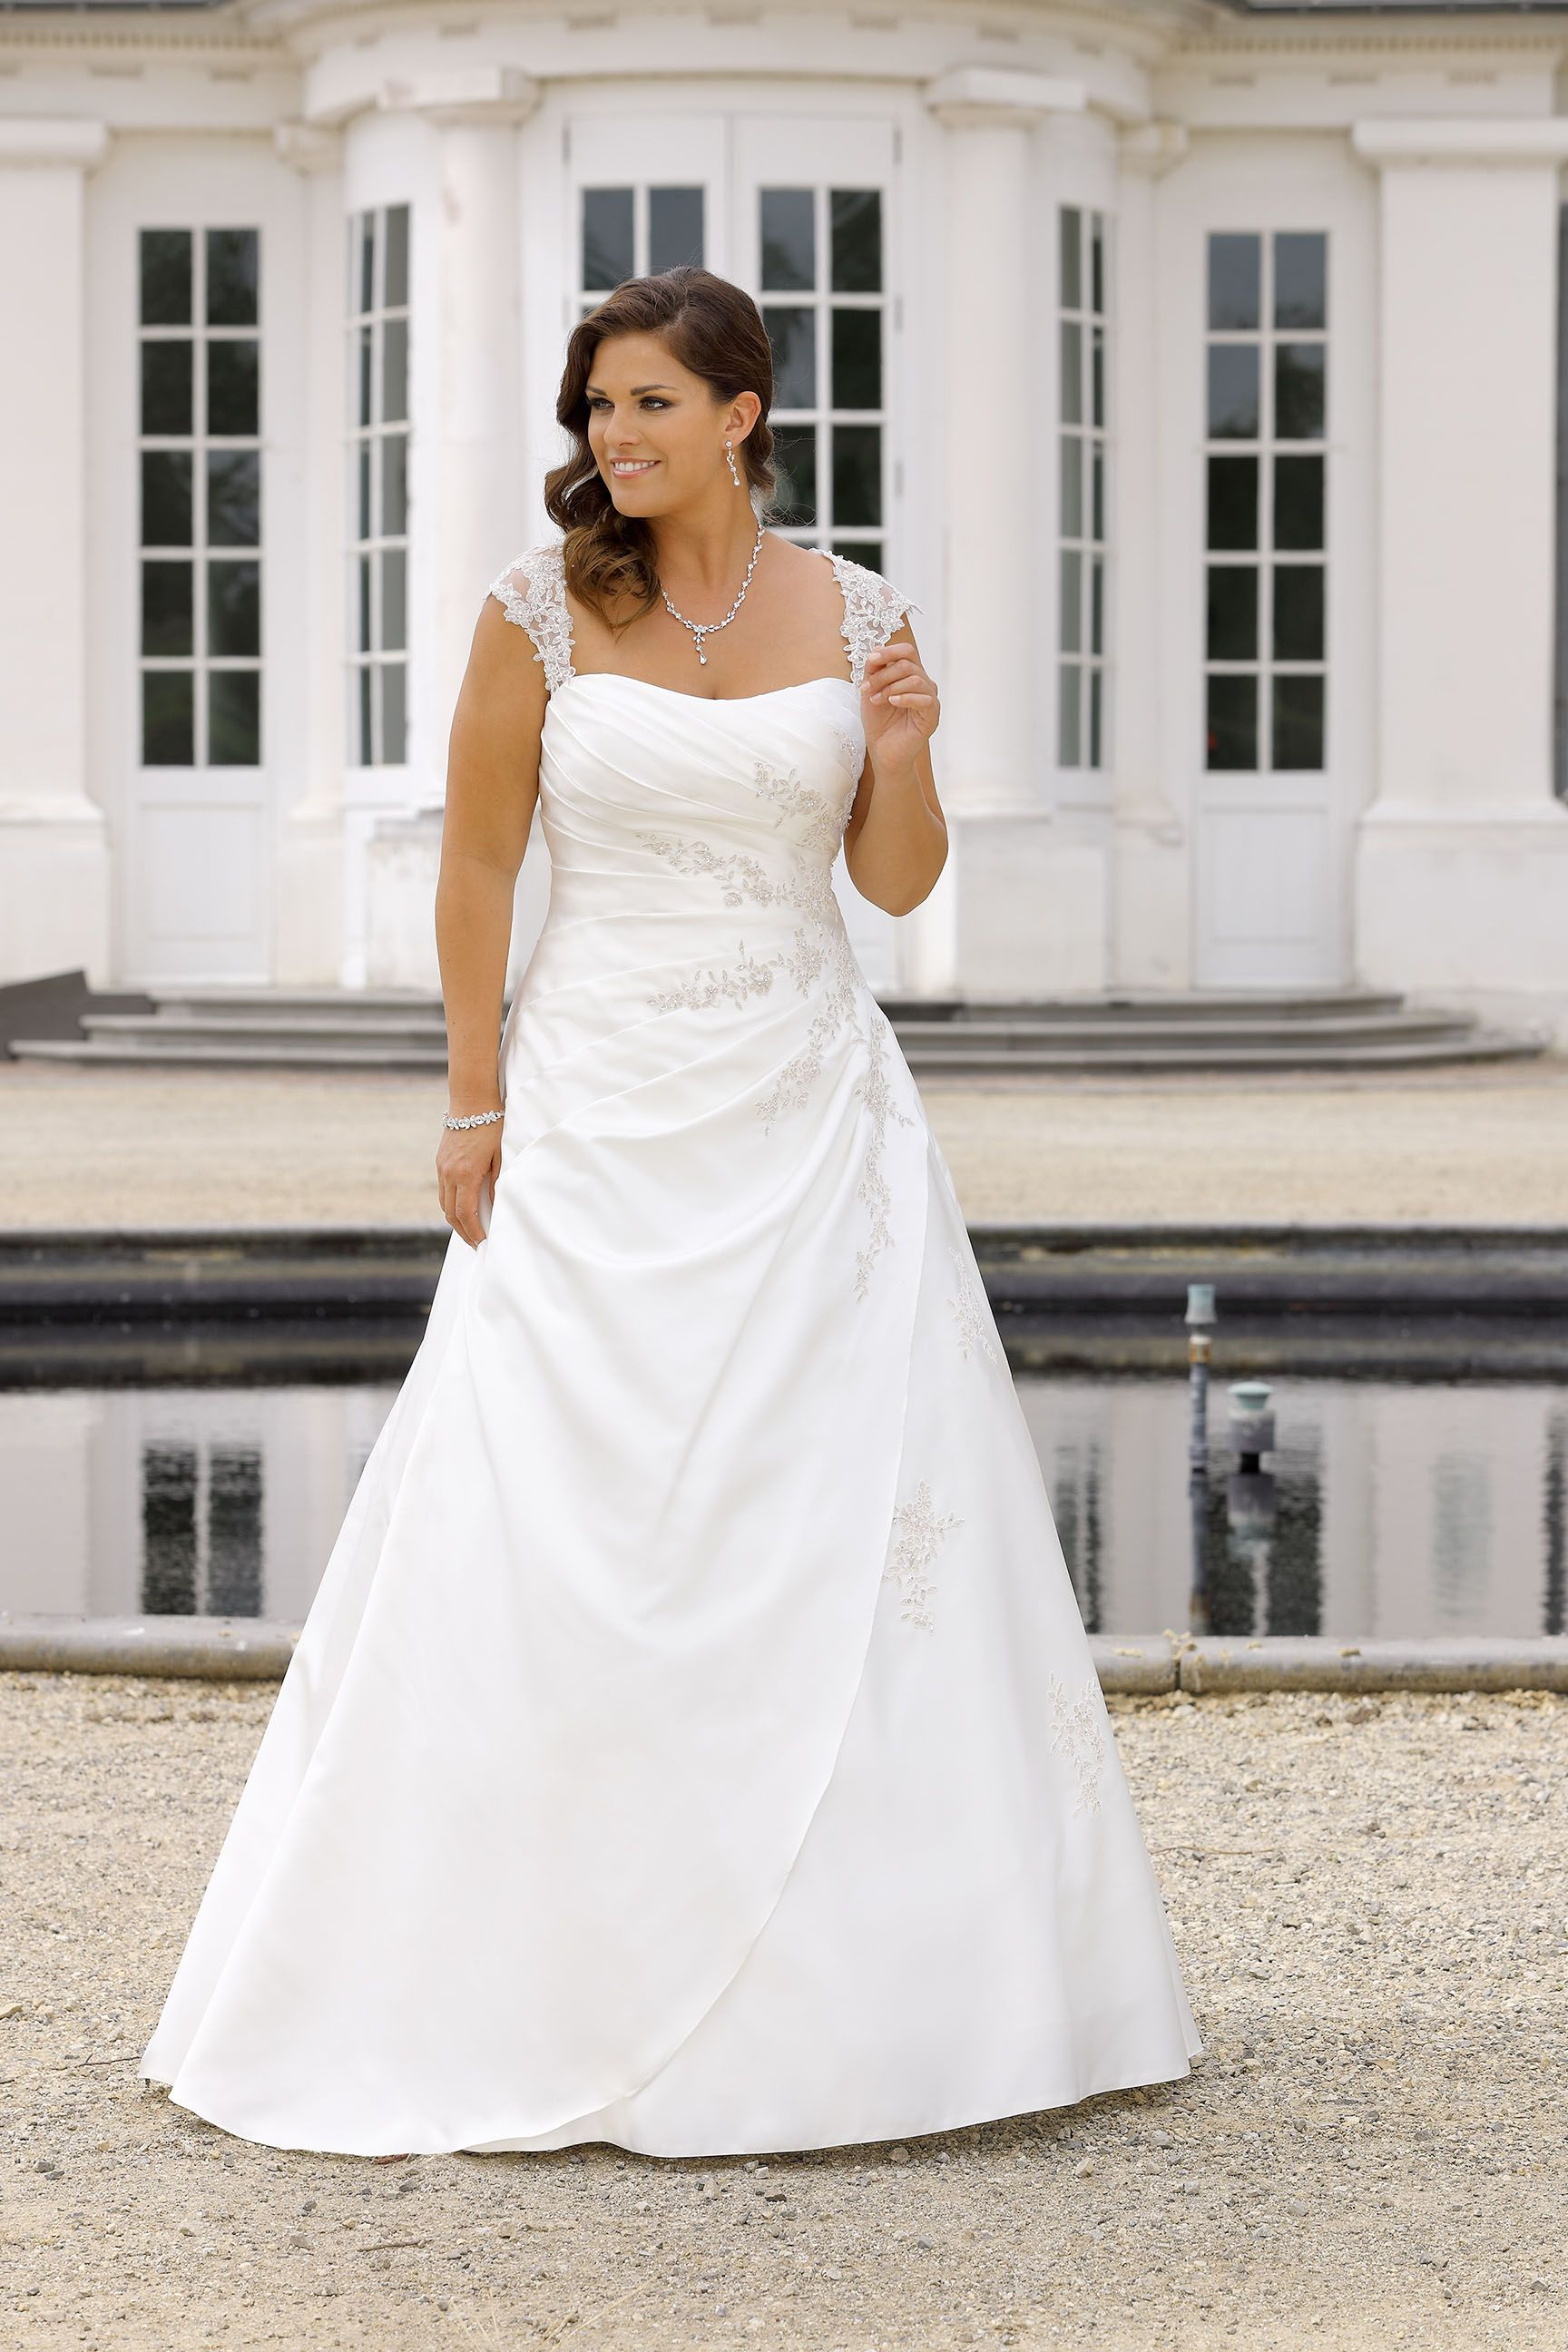 Plus size wedding dress ladybird bridal new collection wedding